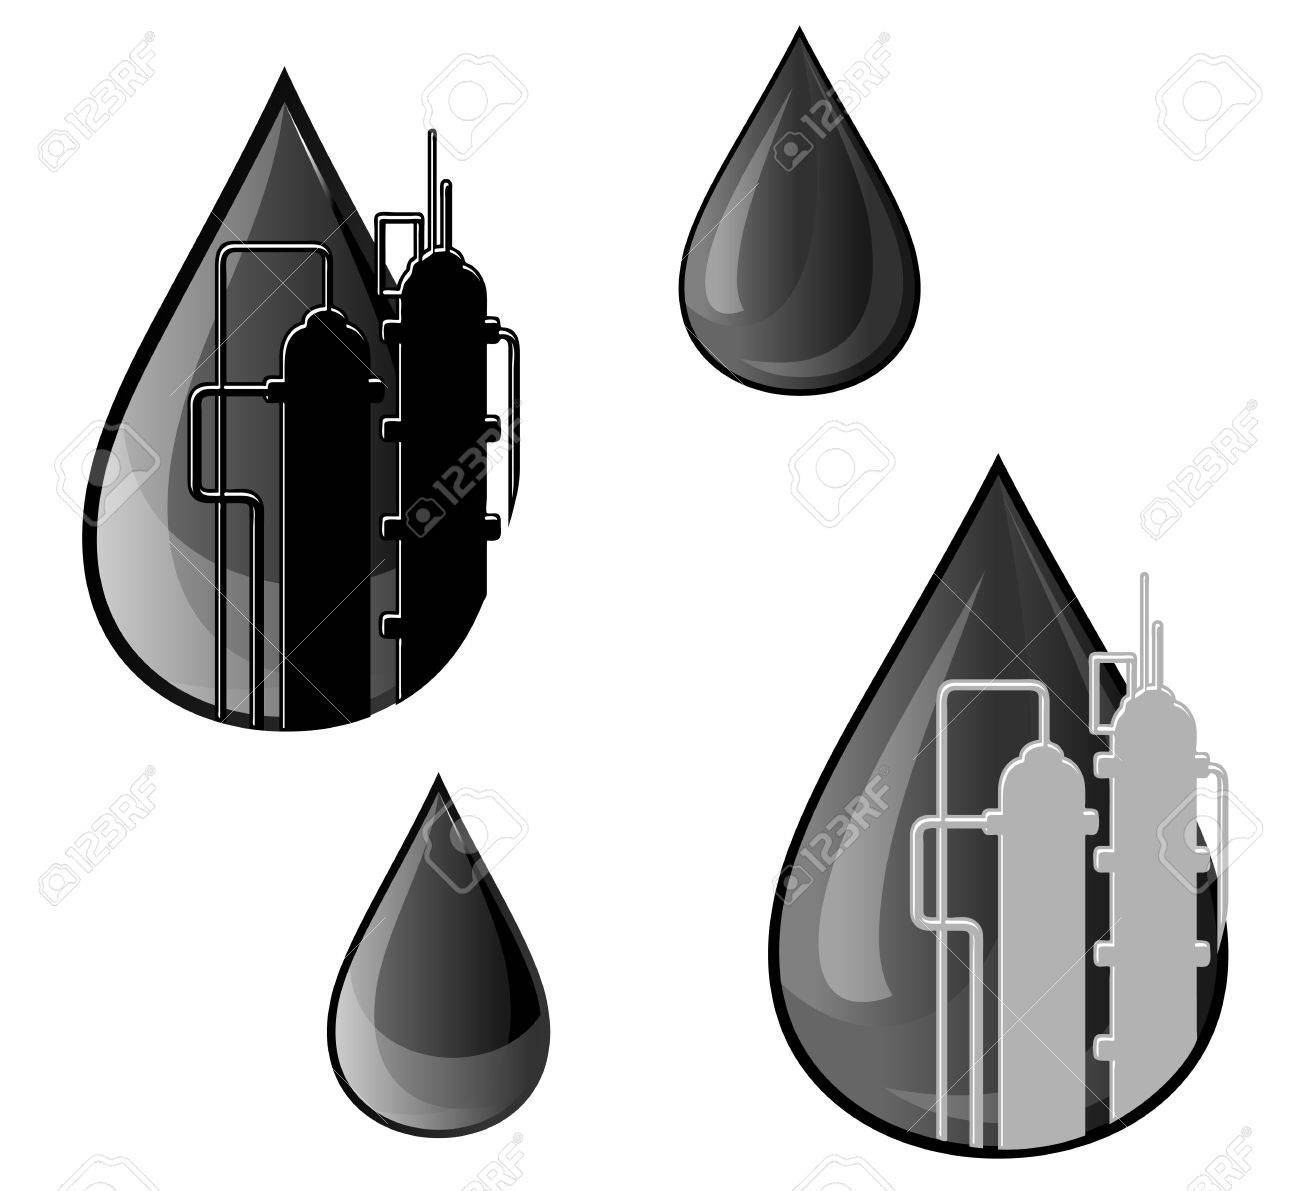 Oil and gasoline symbols for refinery industry design royalty free oil and gasoline symbols for refinery industry design stock vector 12306899 buycottarizona